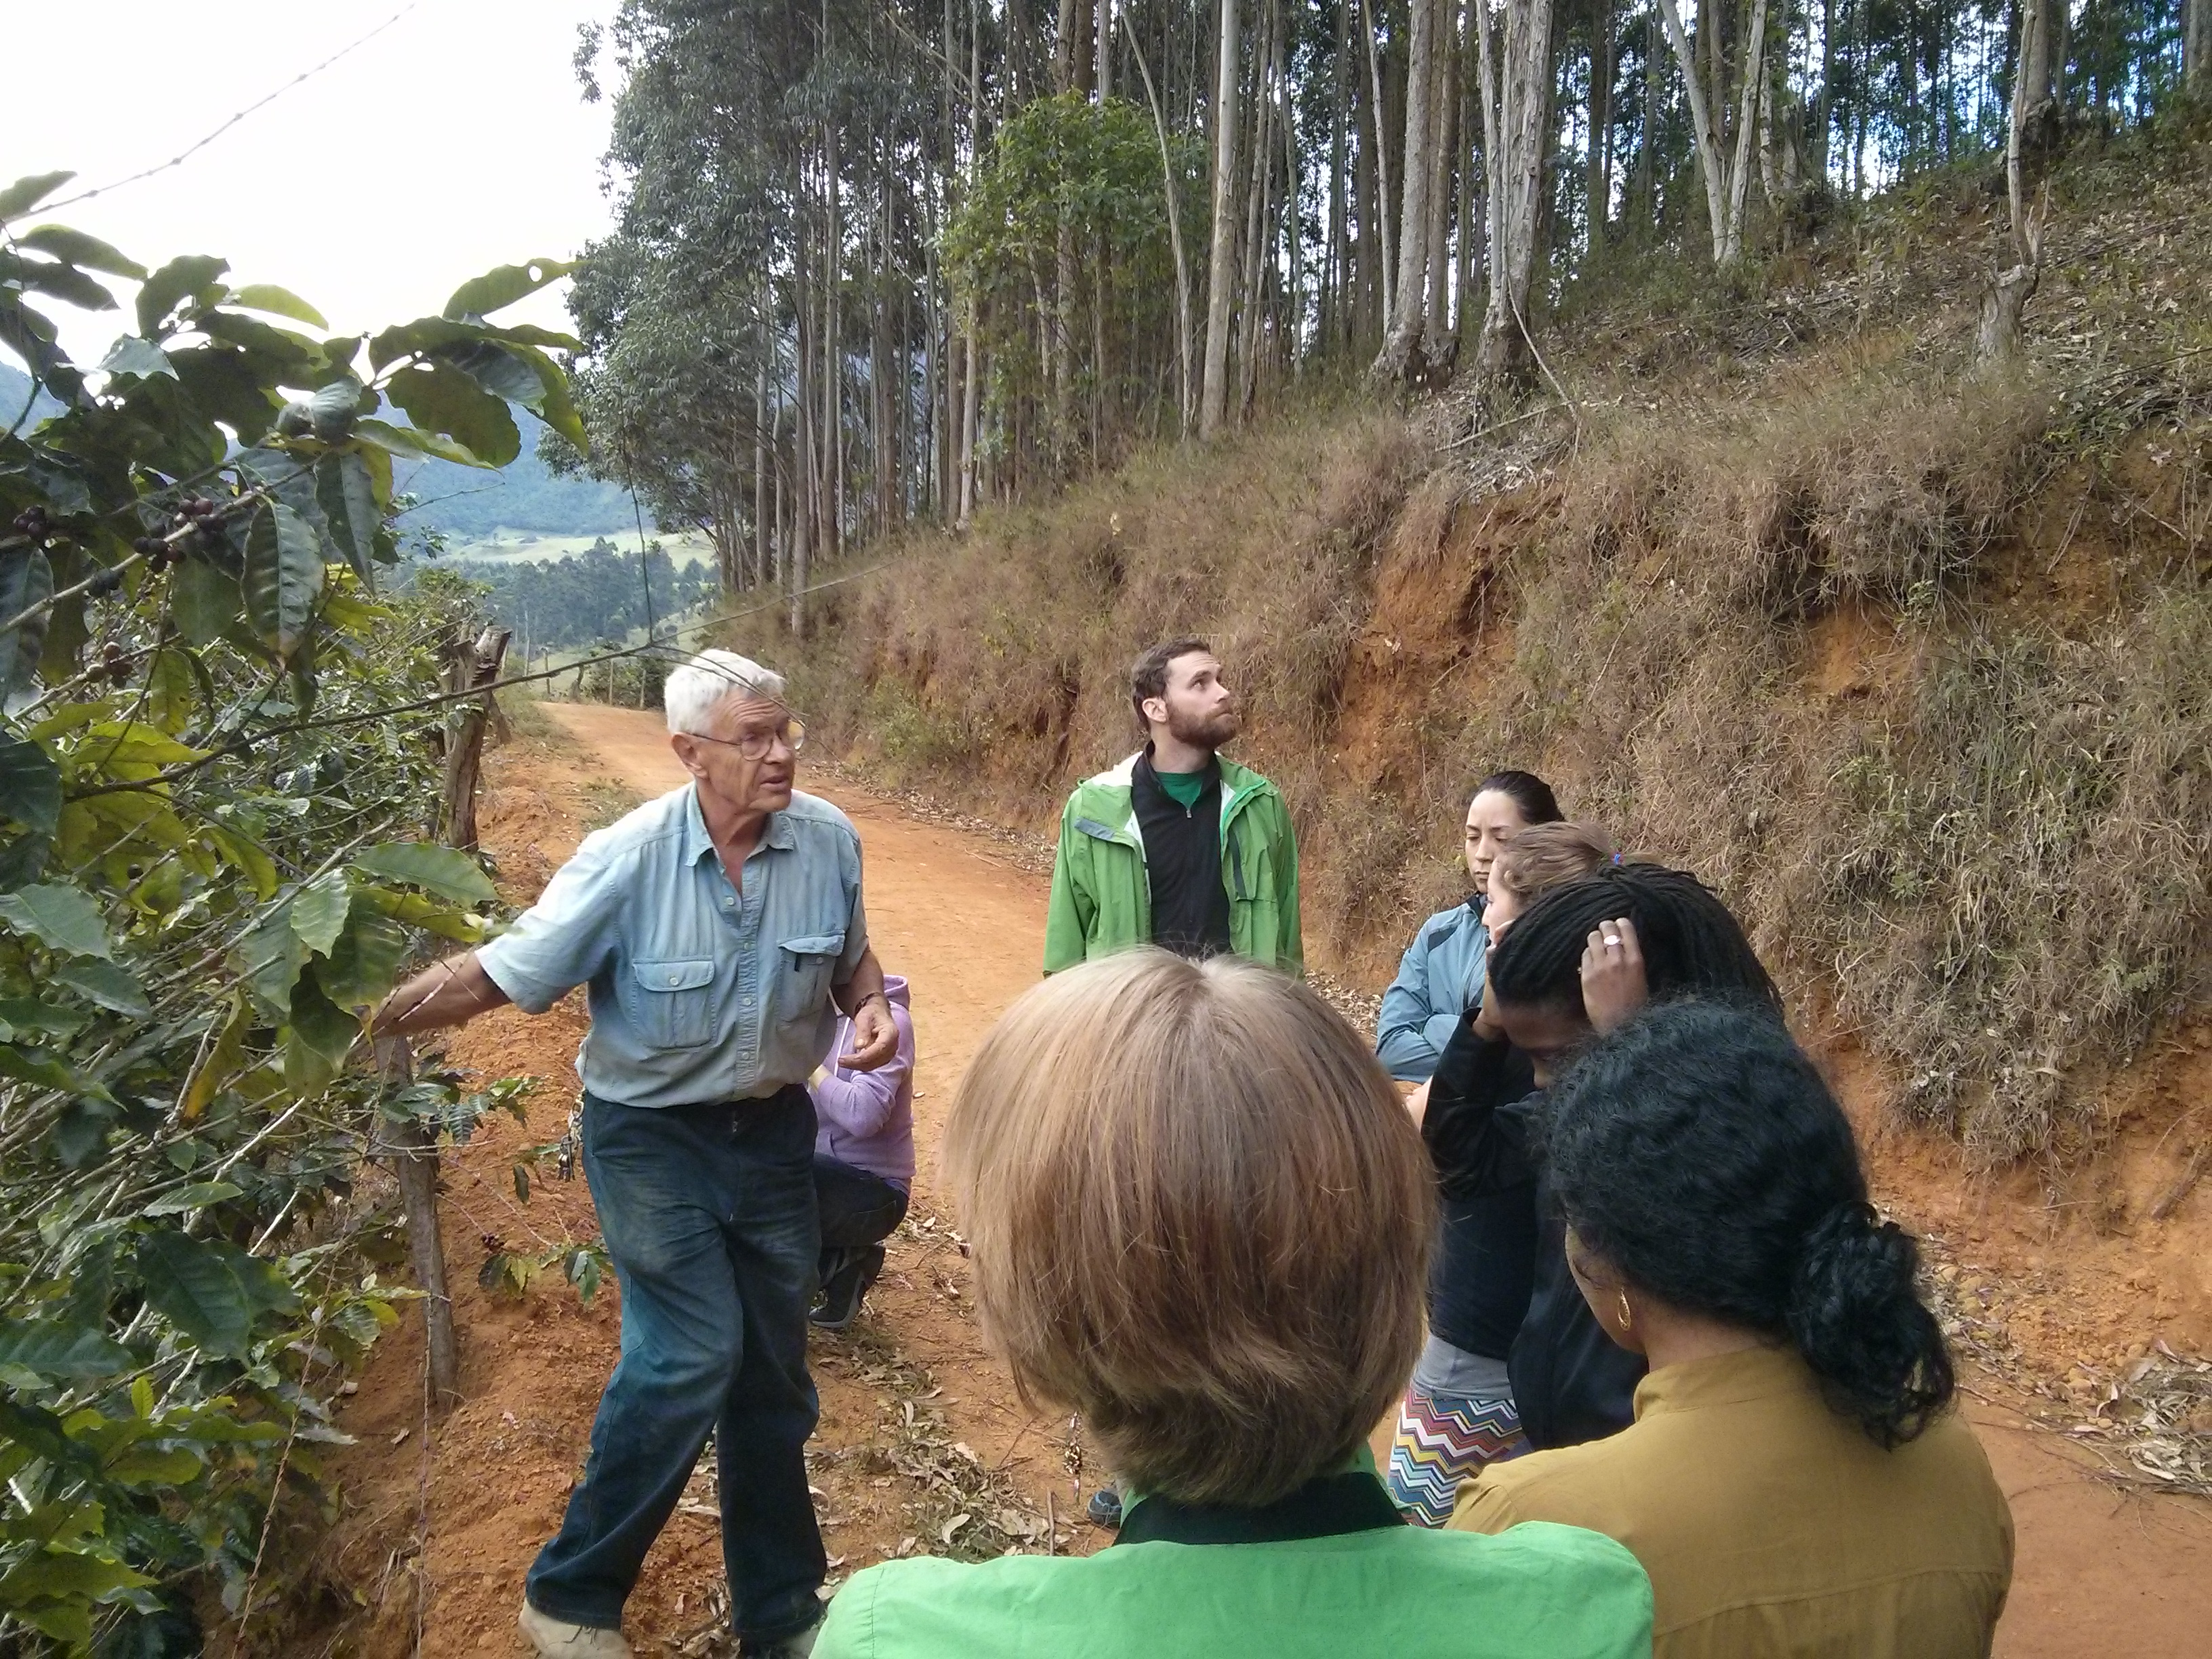 Brazil: Rural Livelihoods and Food Systems